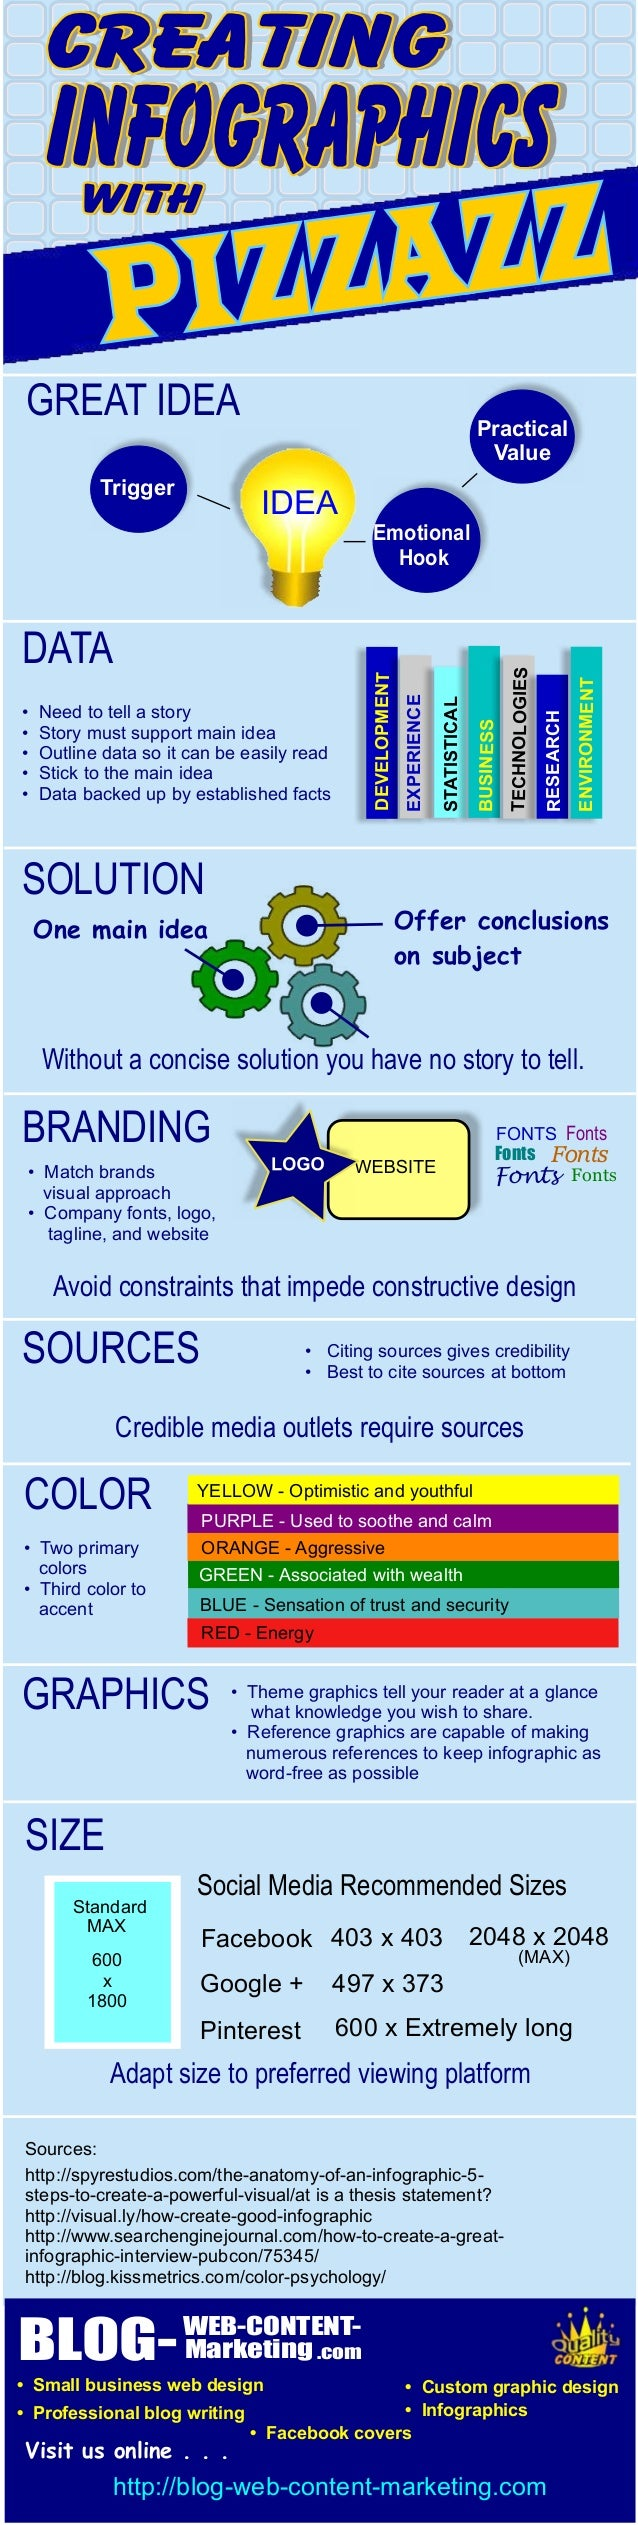 Creating Infographics With Pizzazz